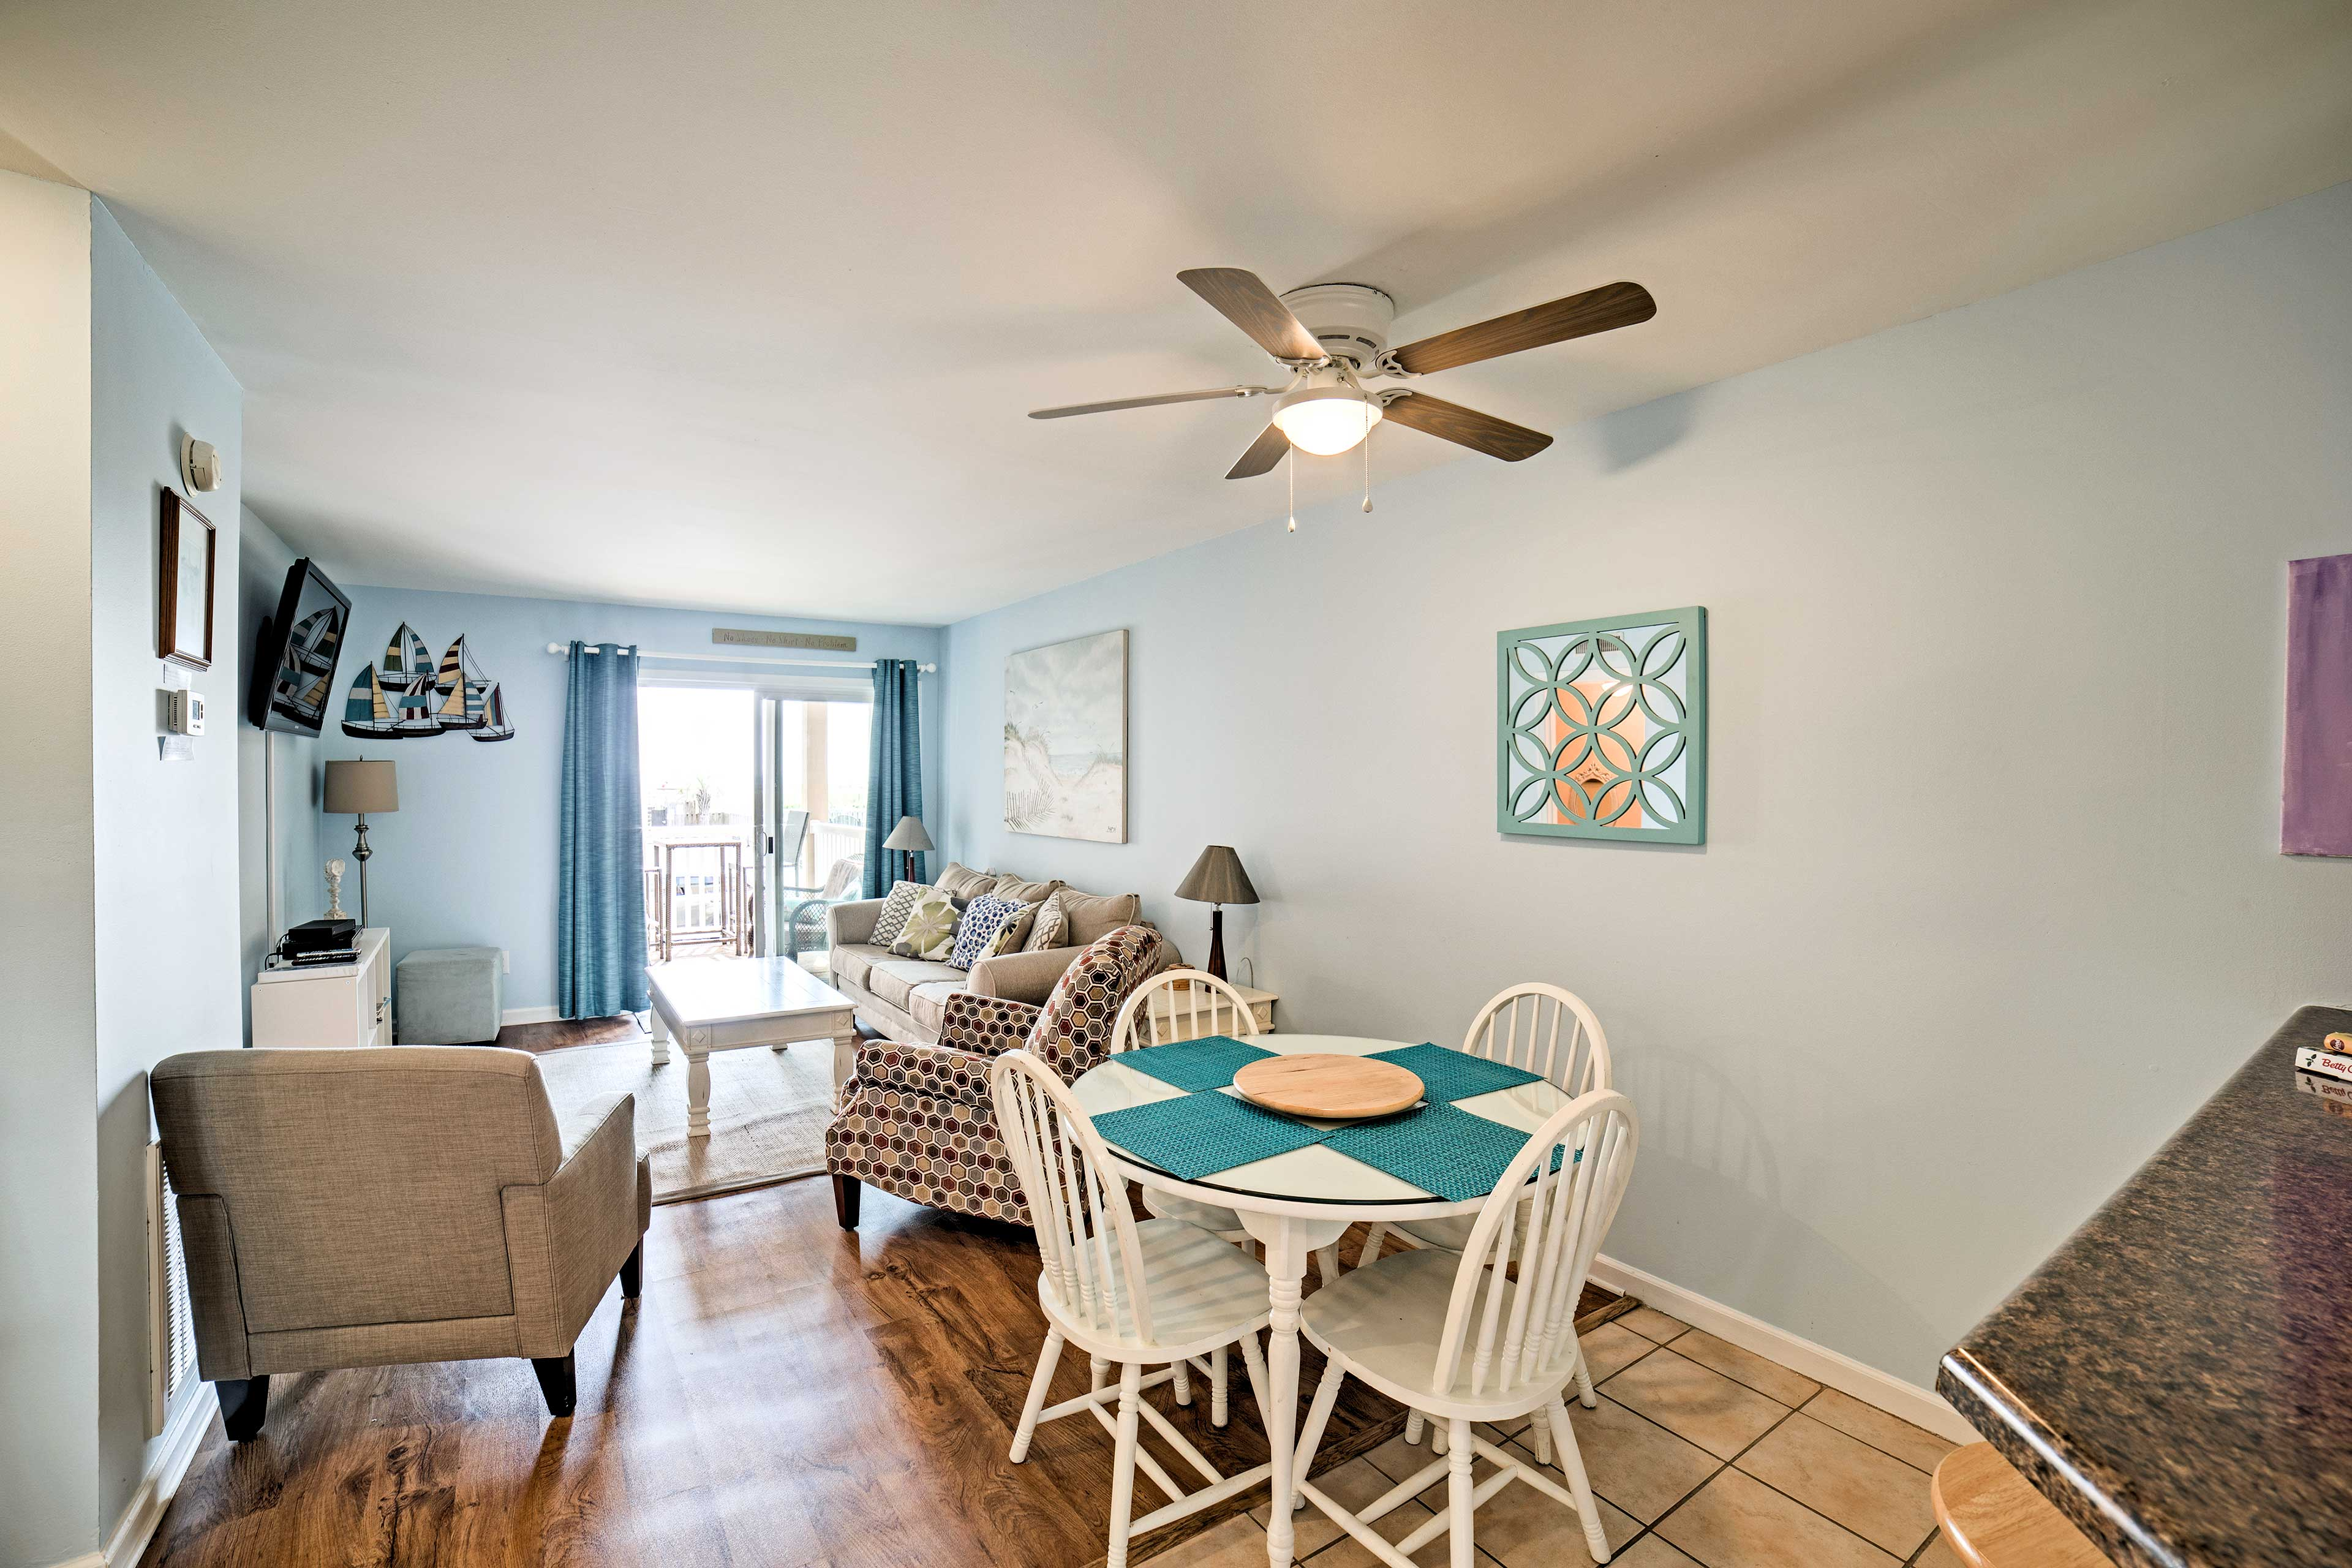 Natural light illuminates the room, complete with a 4-person dining table.